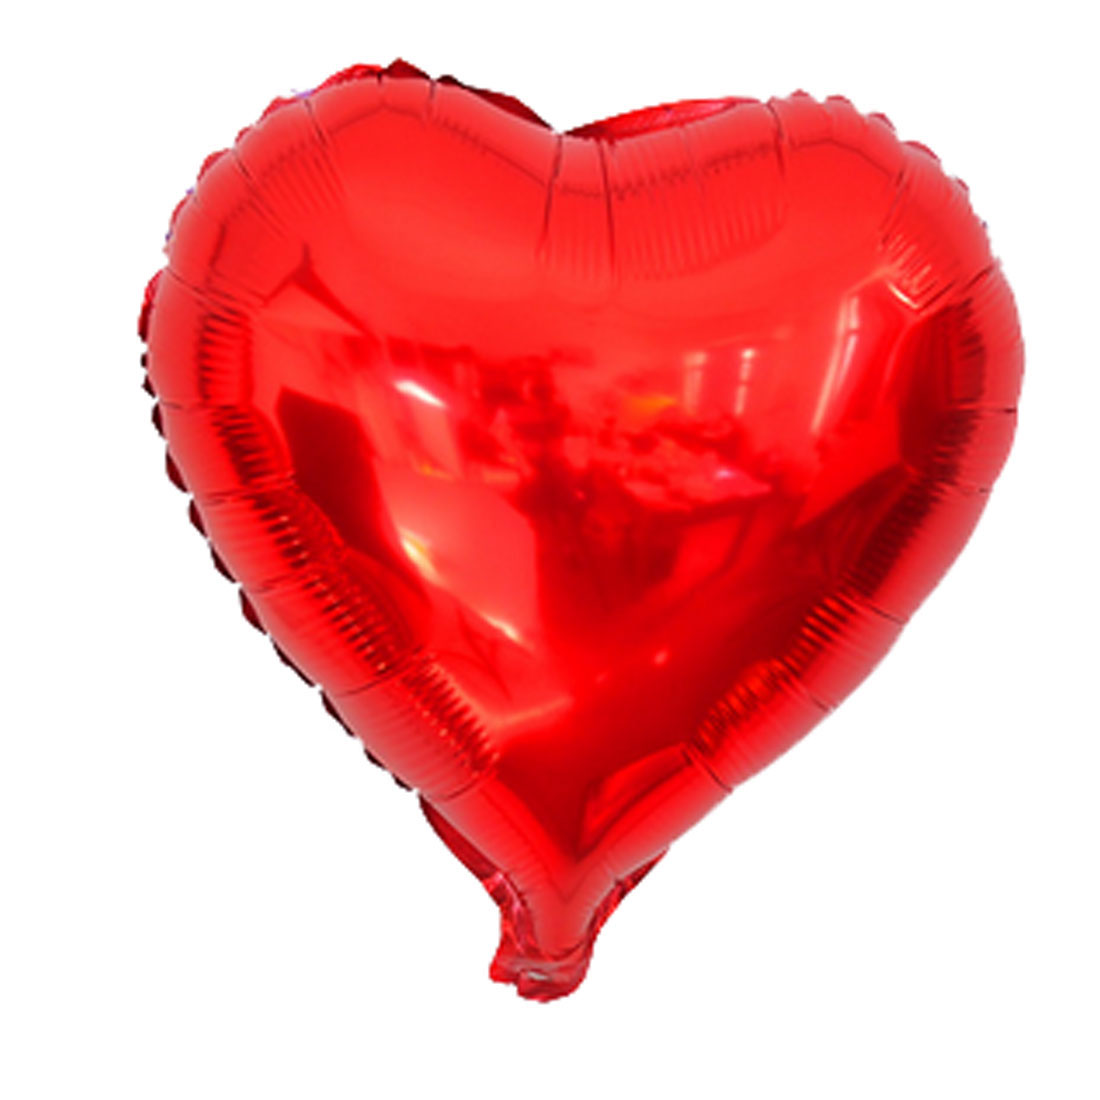 Unique Bargains Foil Heart Shape Balloon Wedding Birthday Celebration Decor Red 23""